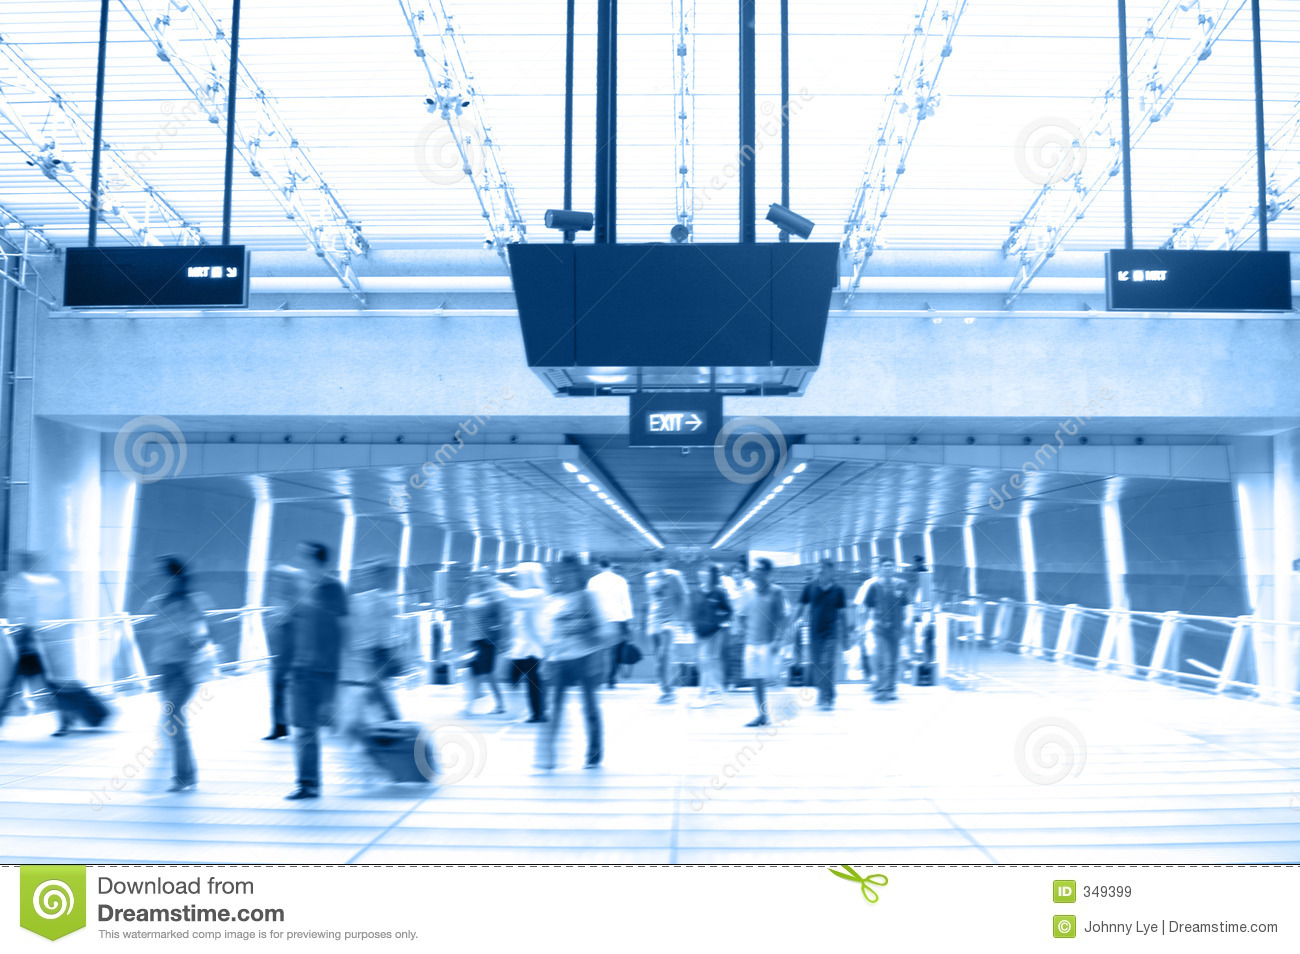 Free Images Traveling People Airport Bridge Business: Airport Scene 2 Stock Image. Image Of Speed, Arrival